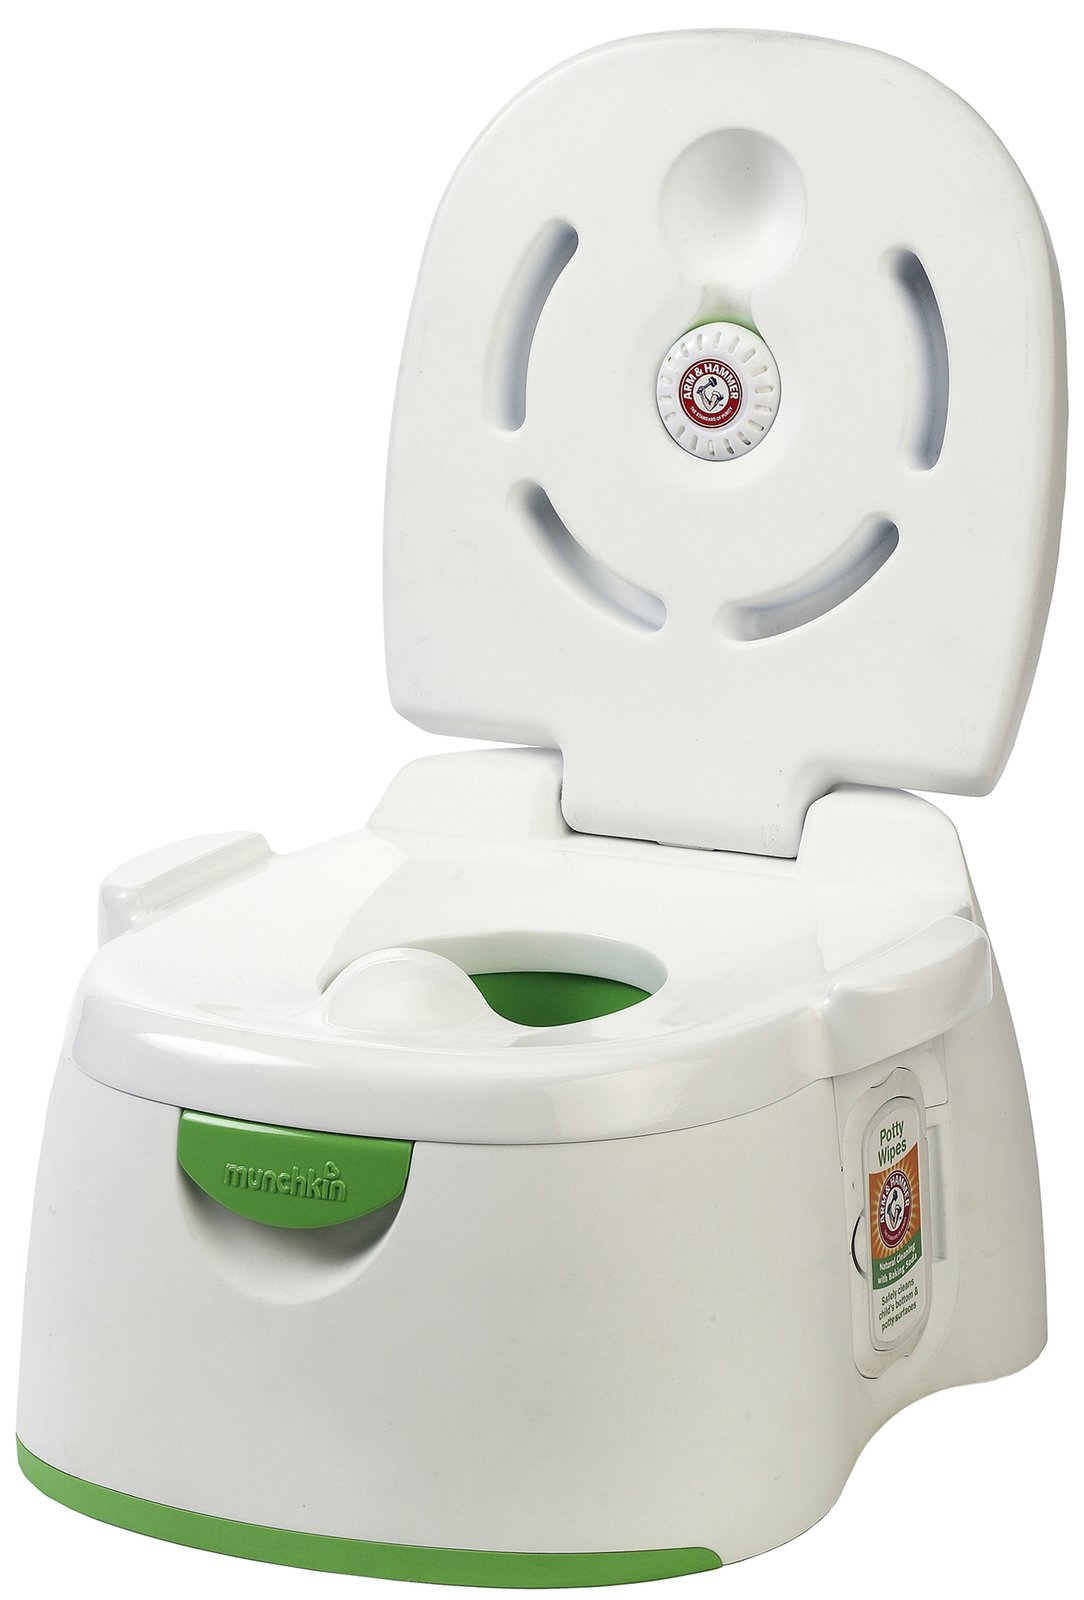 Munchkin Arm Amp Hammer 3 In 1 Potty Seat Read Reviews